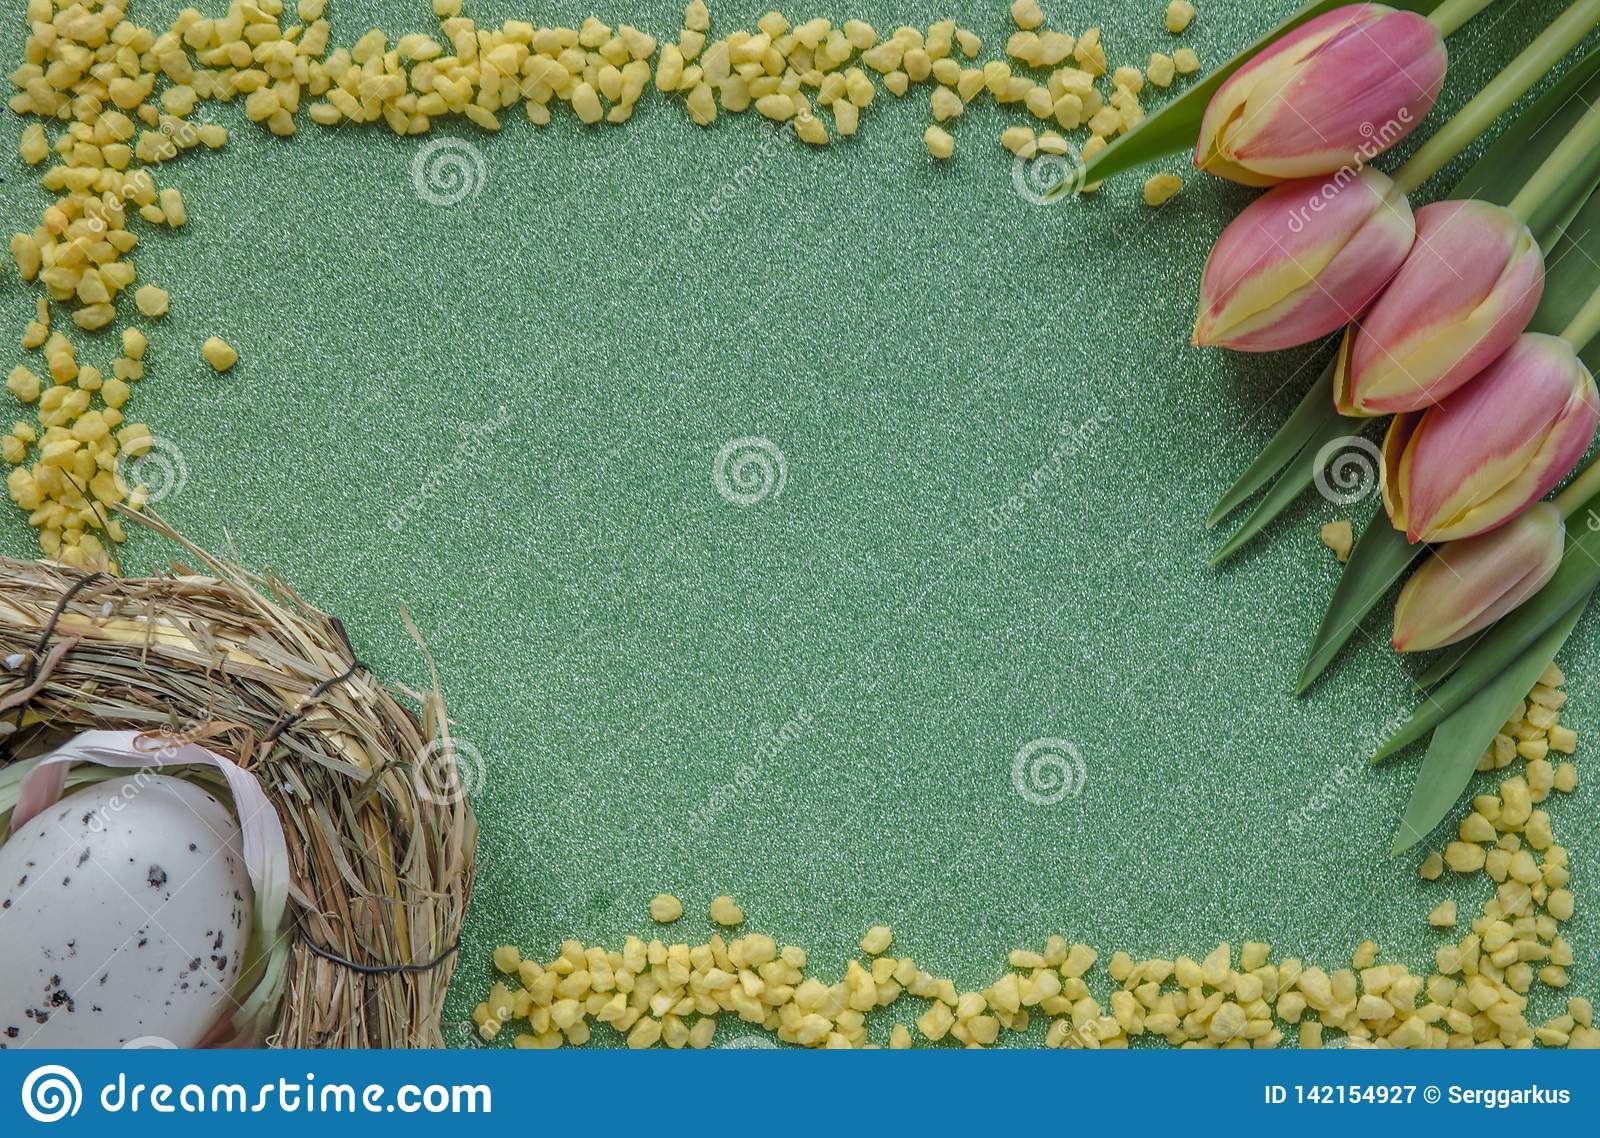 Easter background with red-yellowk tulips and egg on green glitter background with copy space